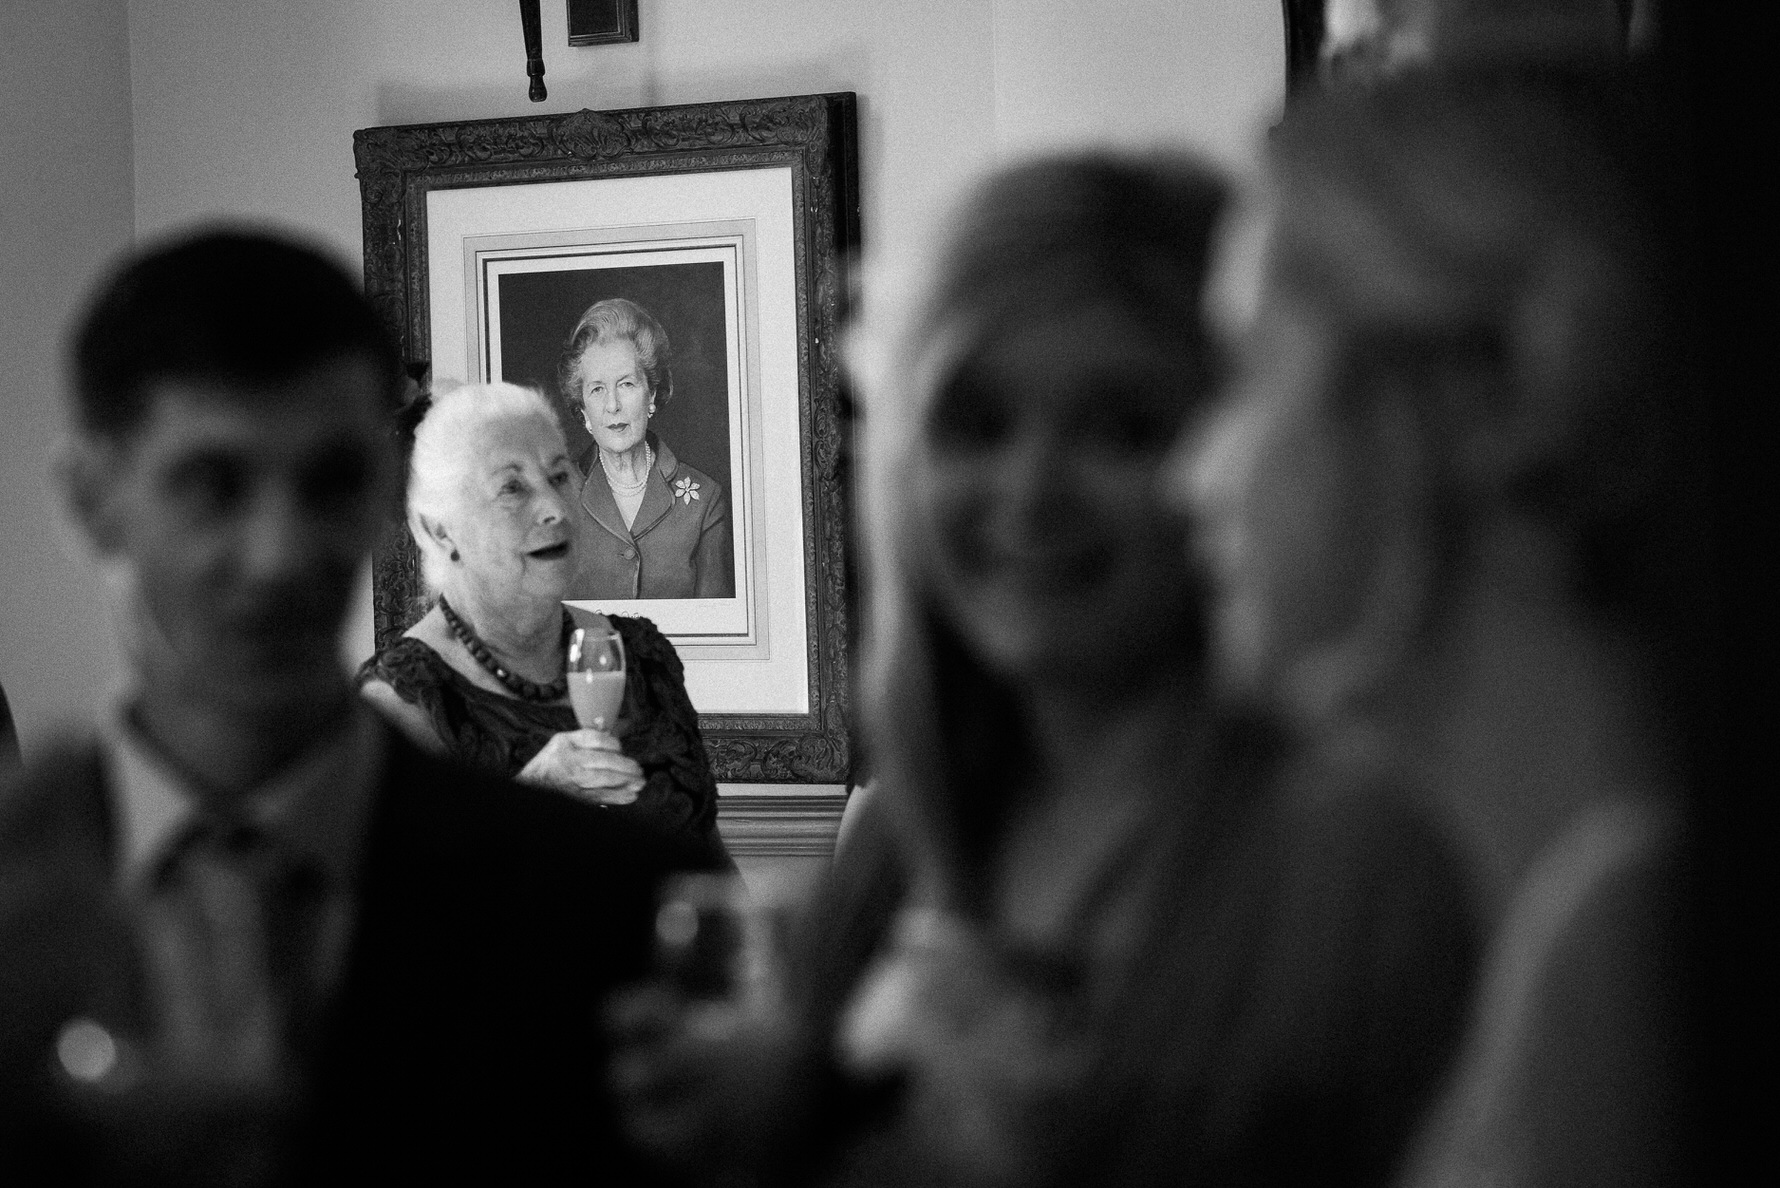 Cheshire Documentary Wedding Photography at Nunsmere Hall